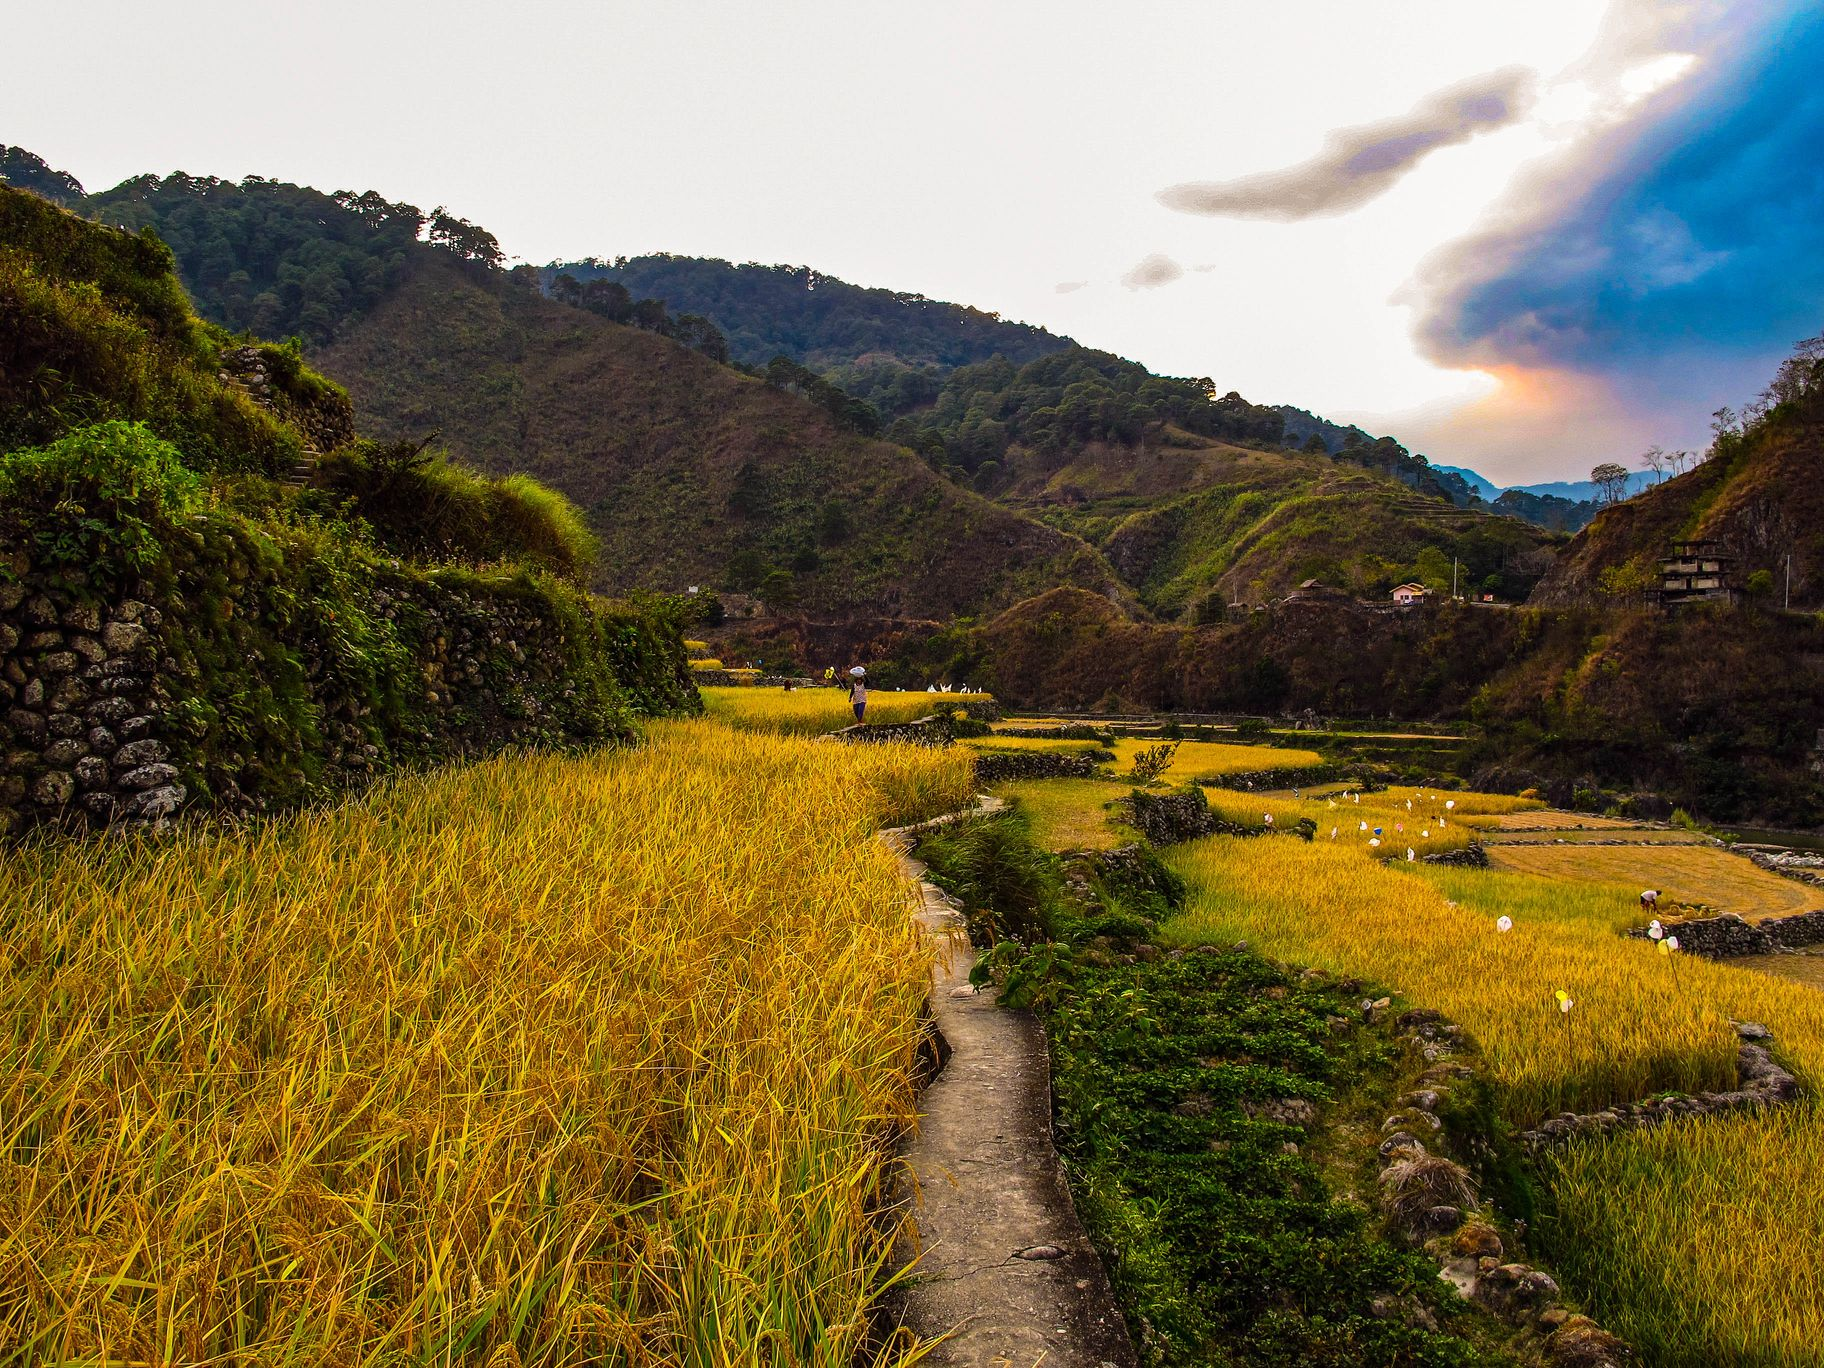 View of narrow pathways running through terraced paddy fields carved along mountainsides in Ifugao, Philippines